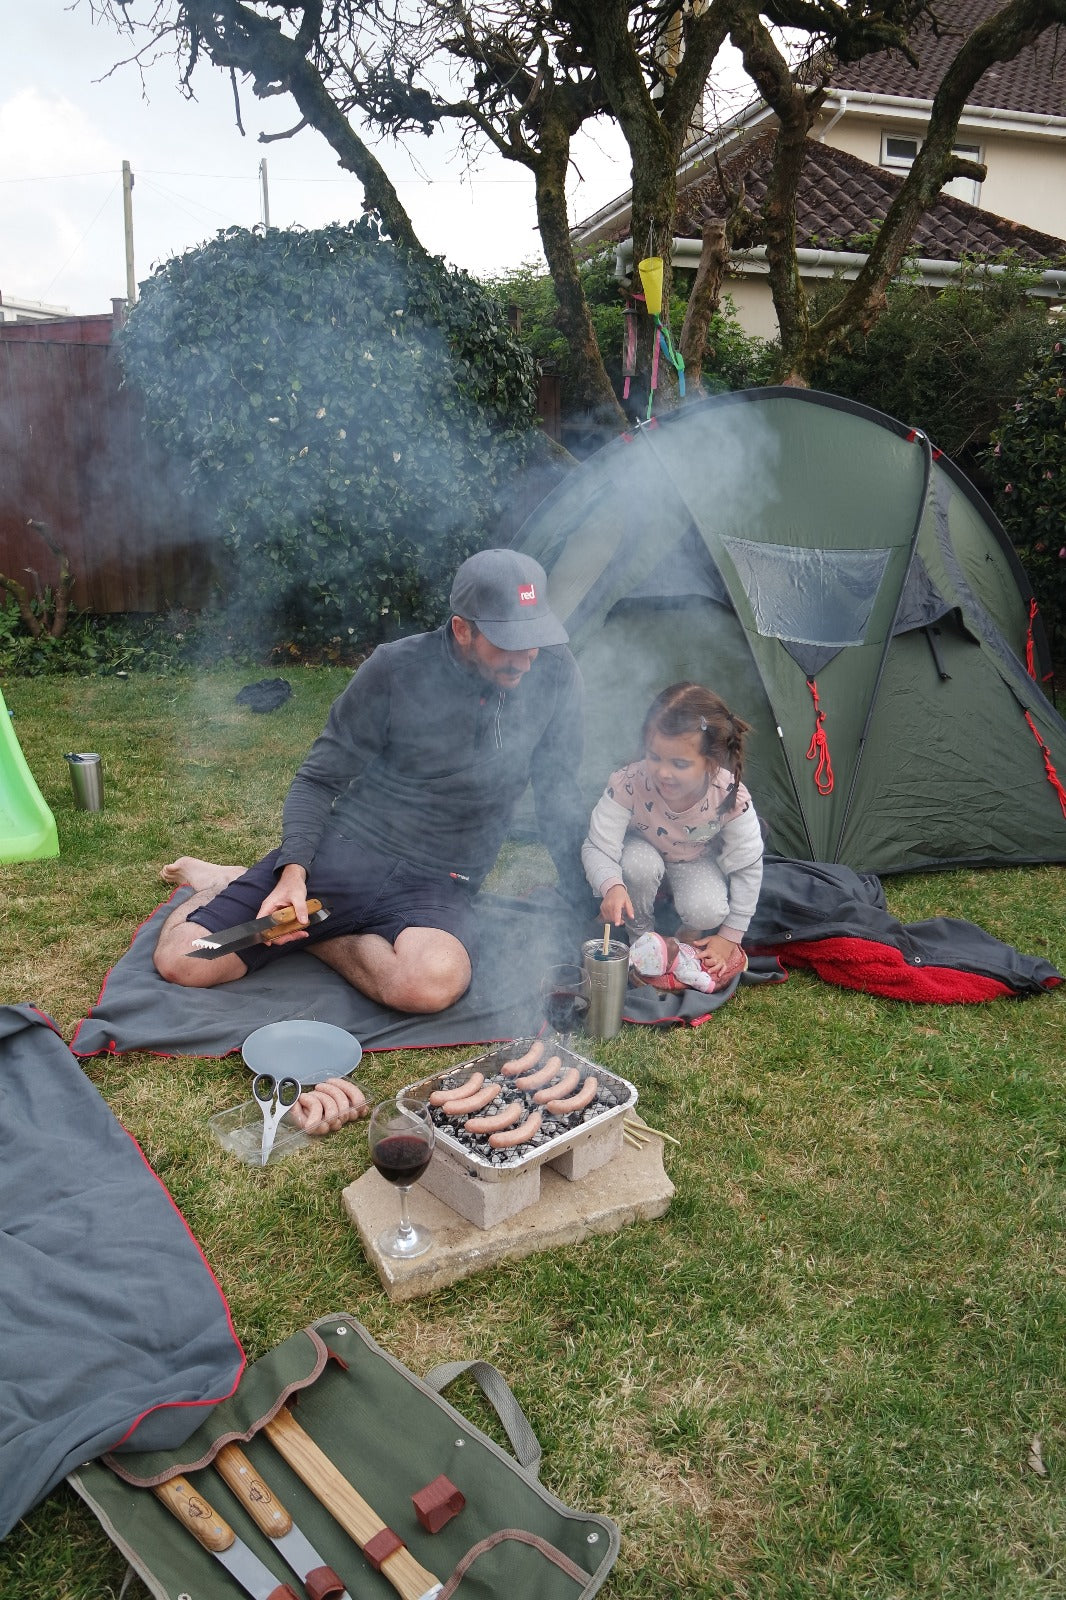 Camp site in the back garden with father and daughter